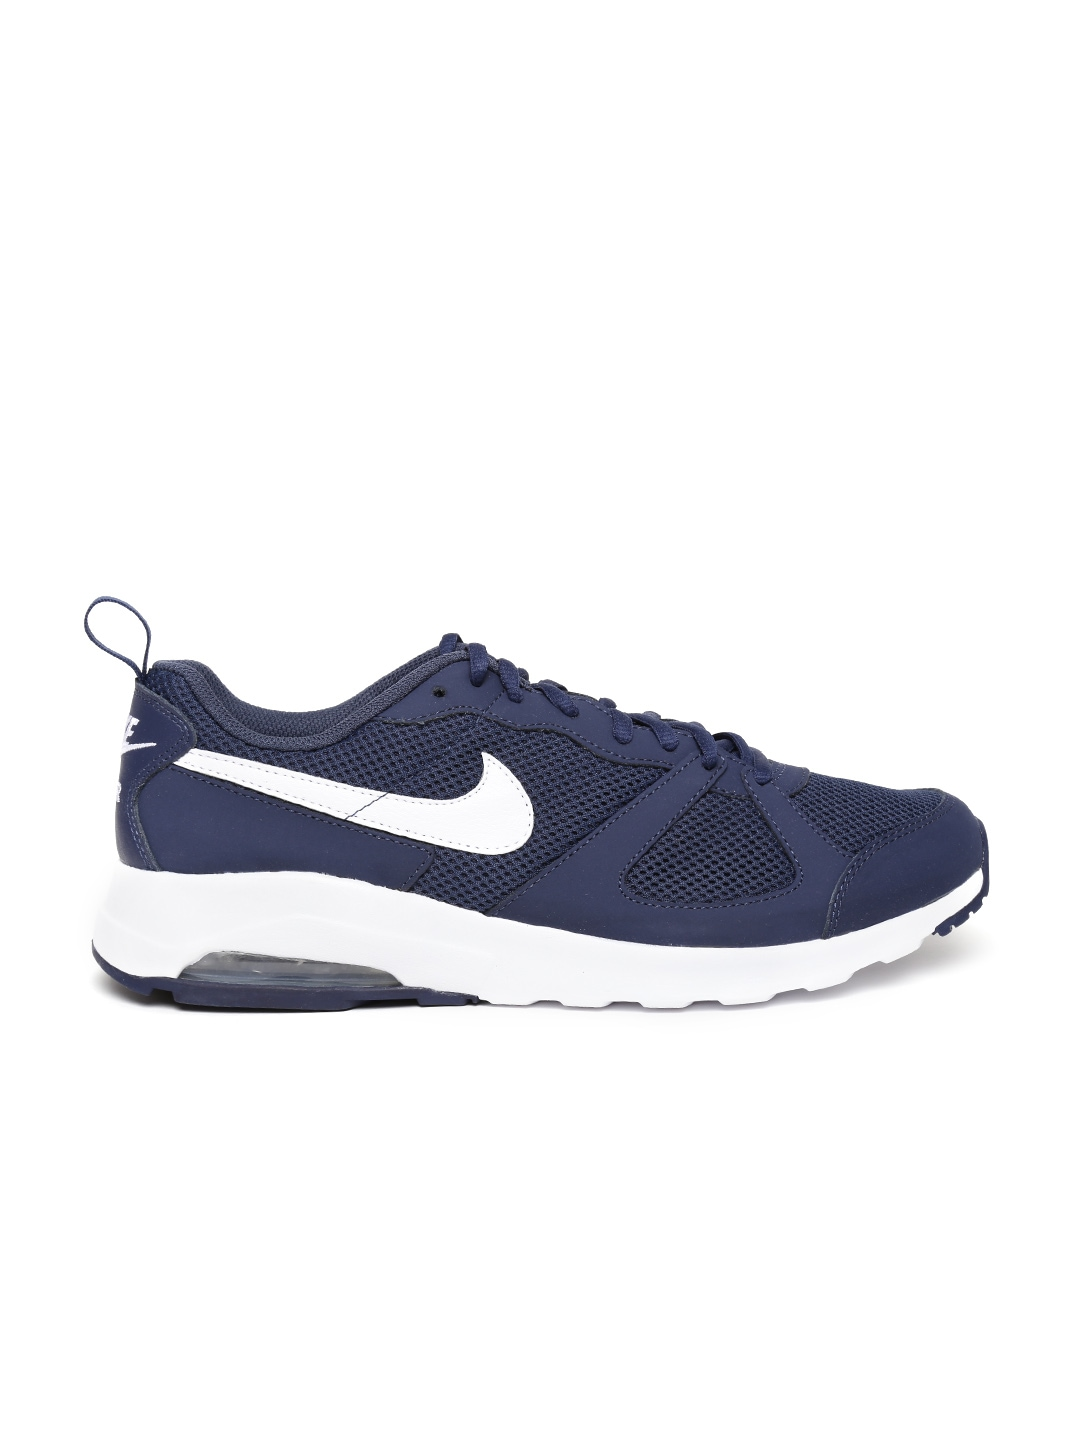 myntra nike navy air max muse casual shoes 678009